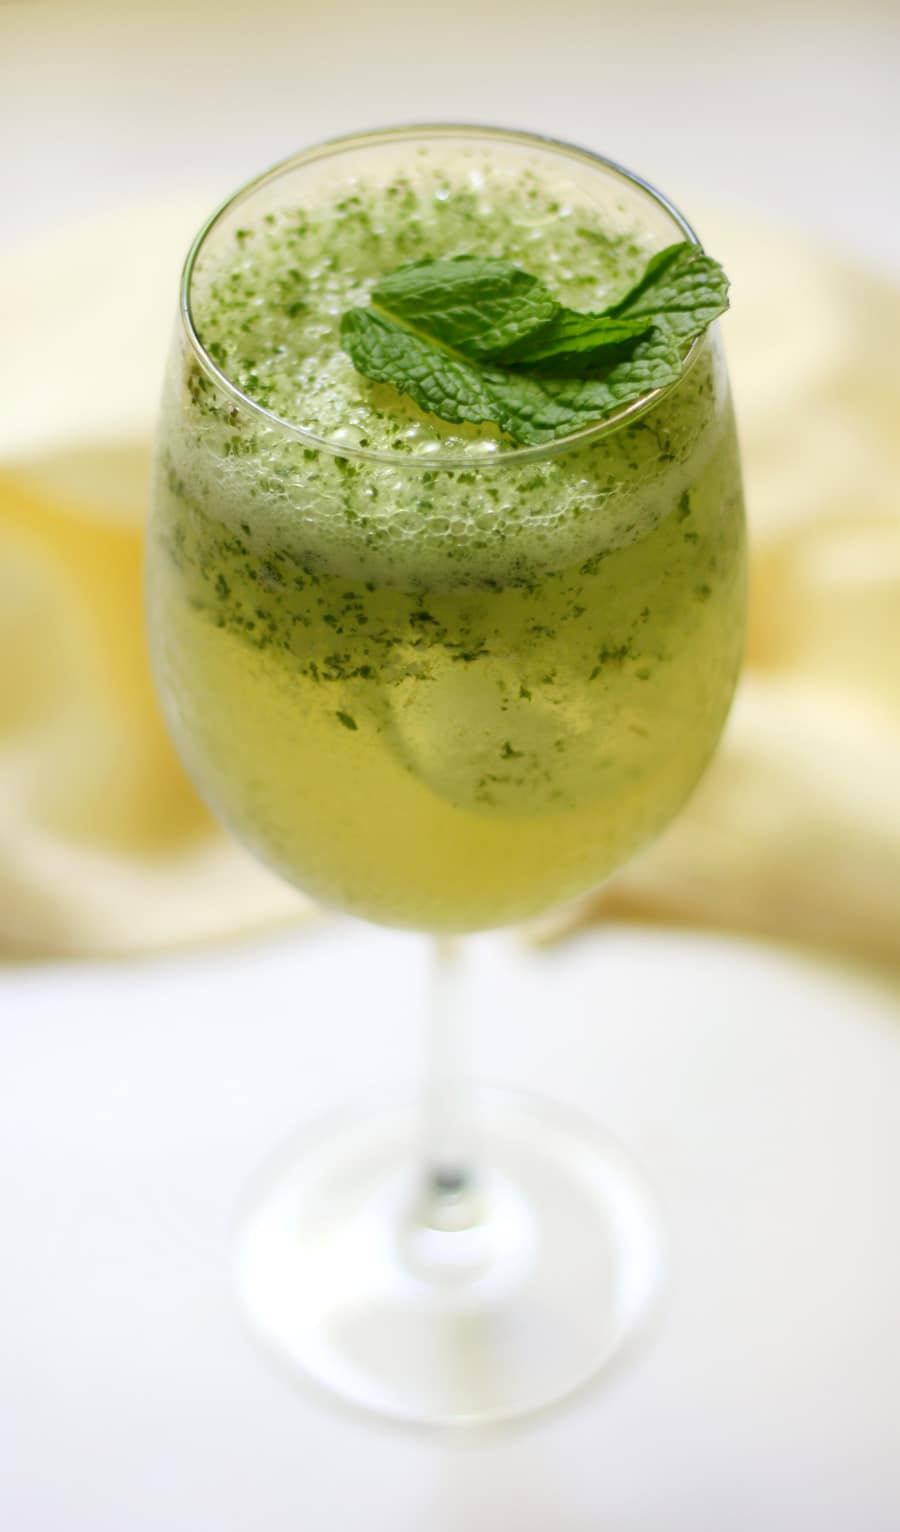 a glass with green tea and garnished with green tea flakes and mint